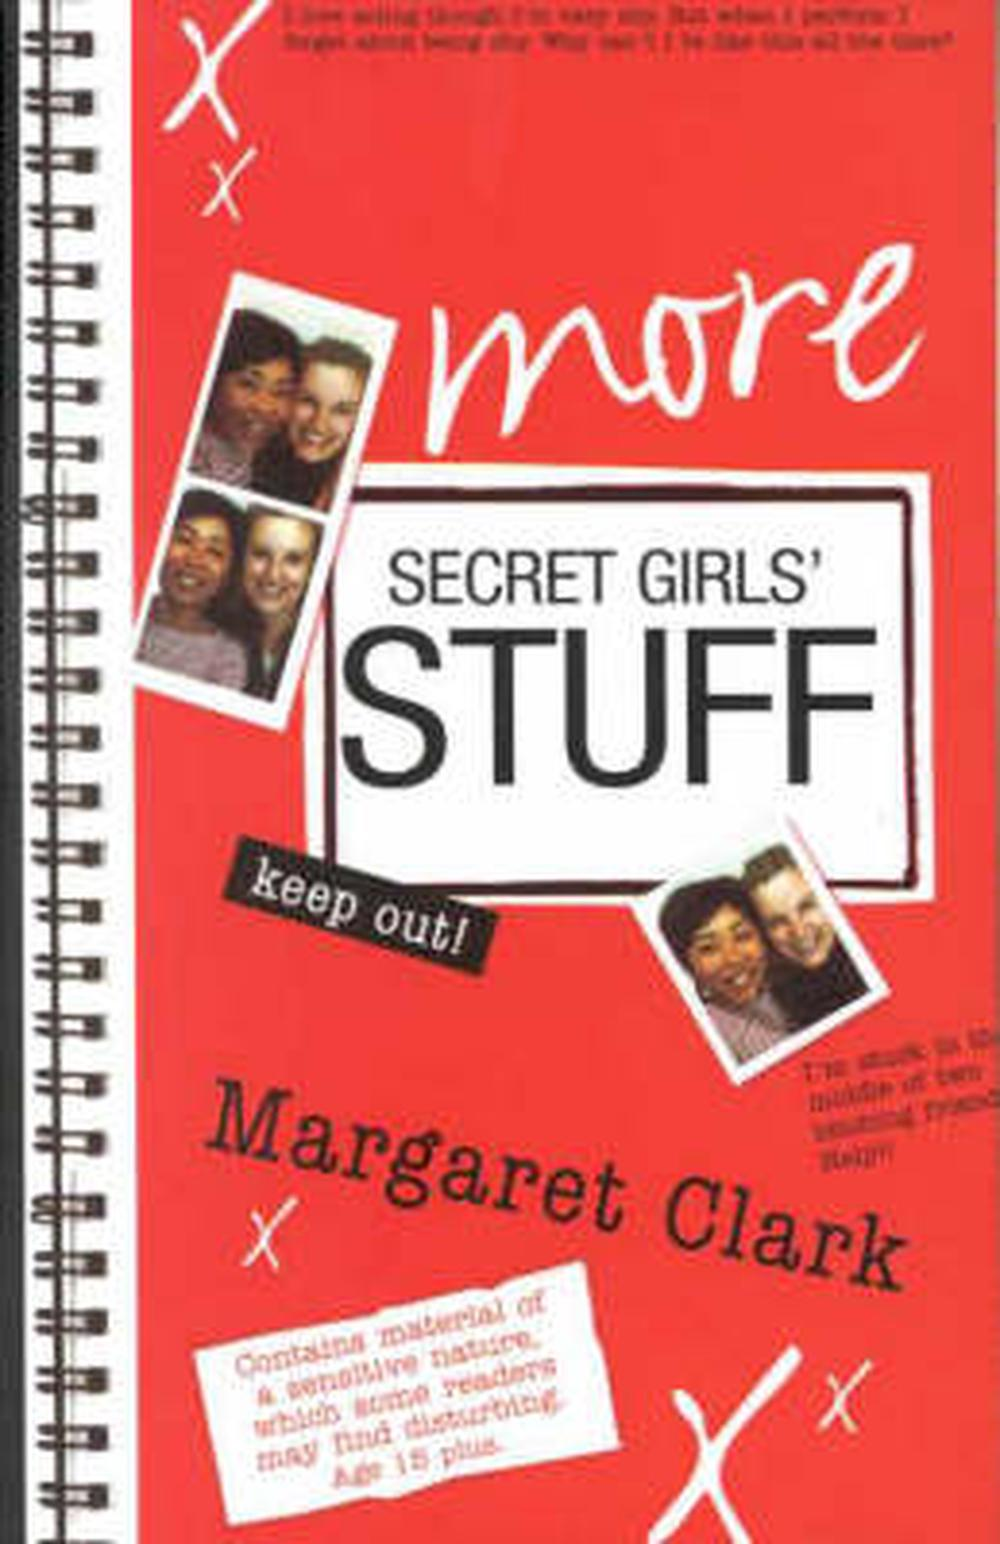 More Secret Girls' Stuff